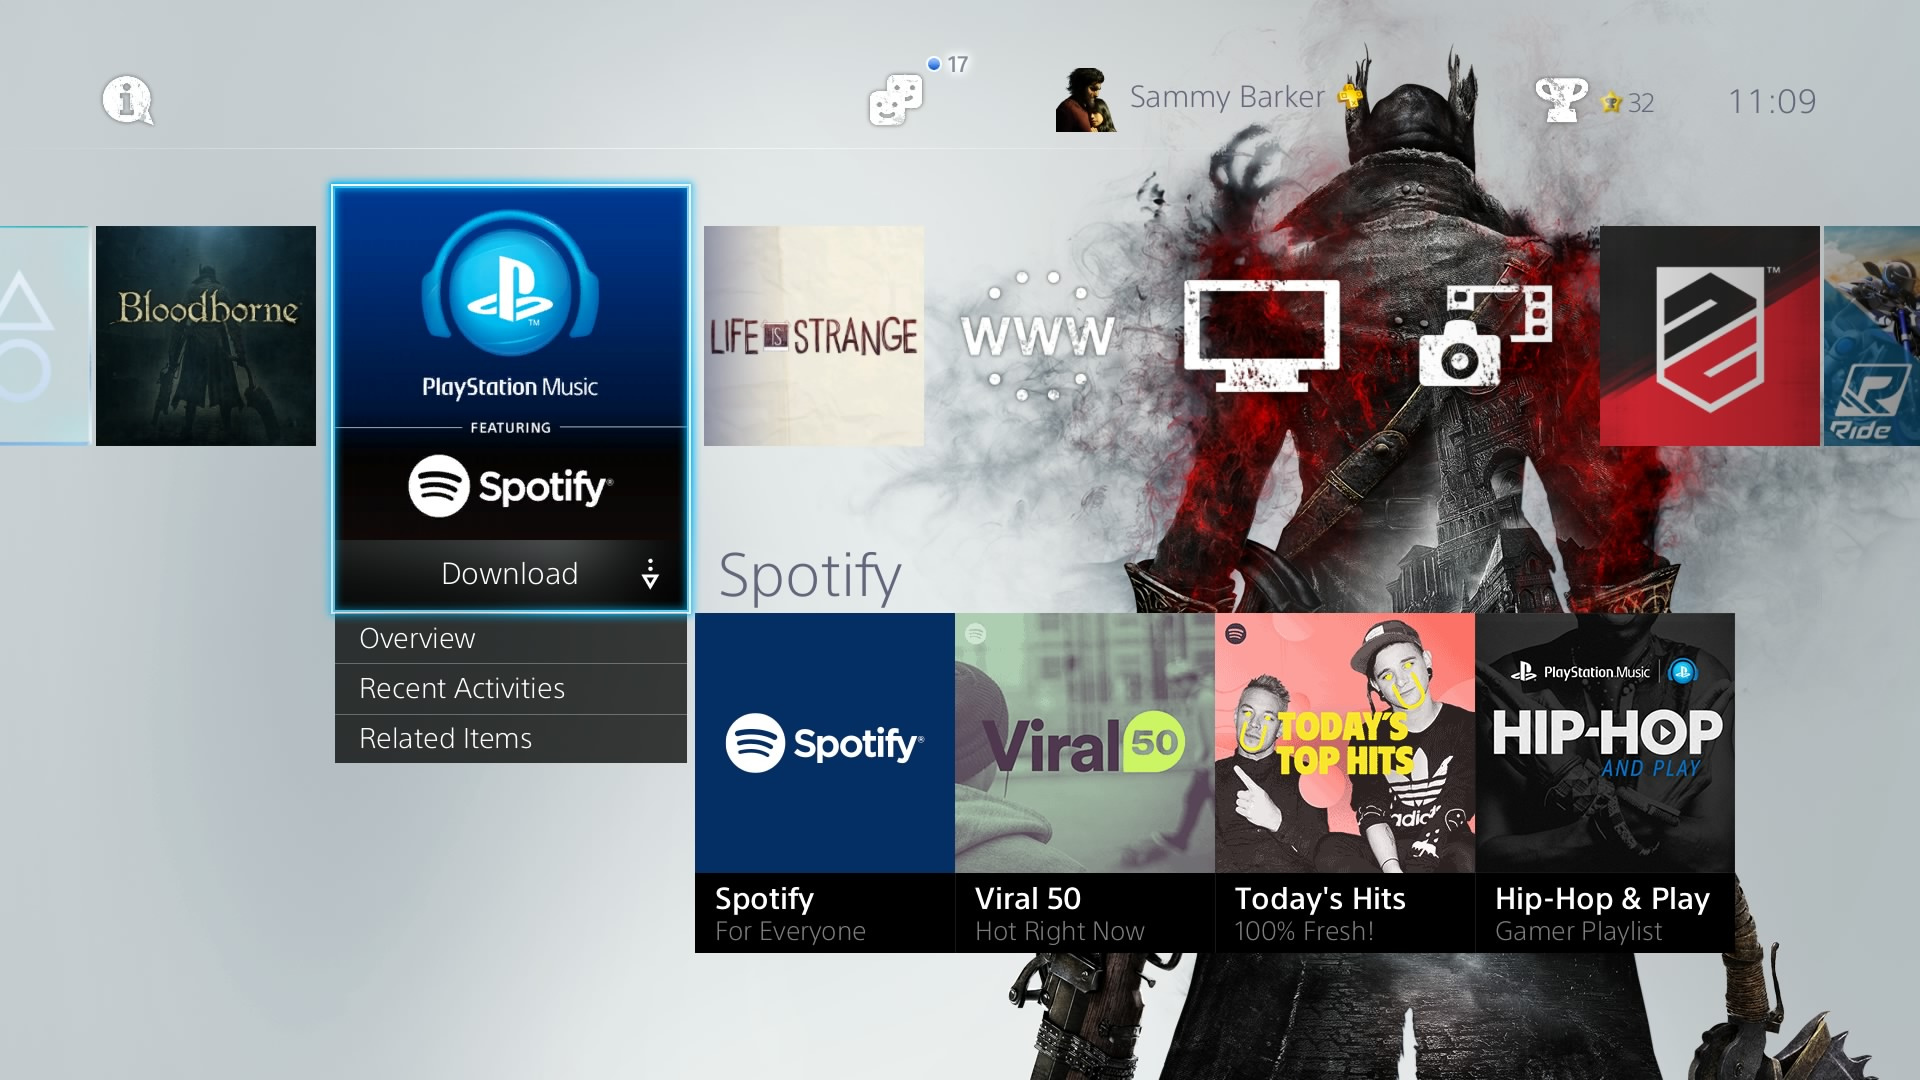 Spotify Arrives Exclusively on PS4, PS3 Today - Push Square